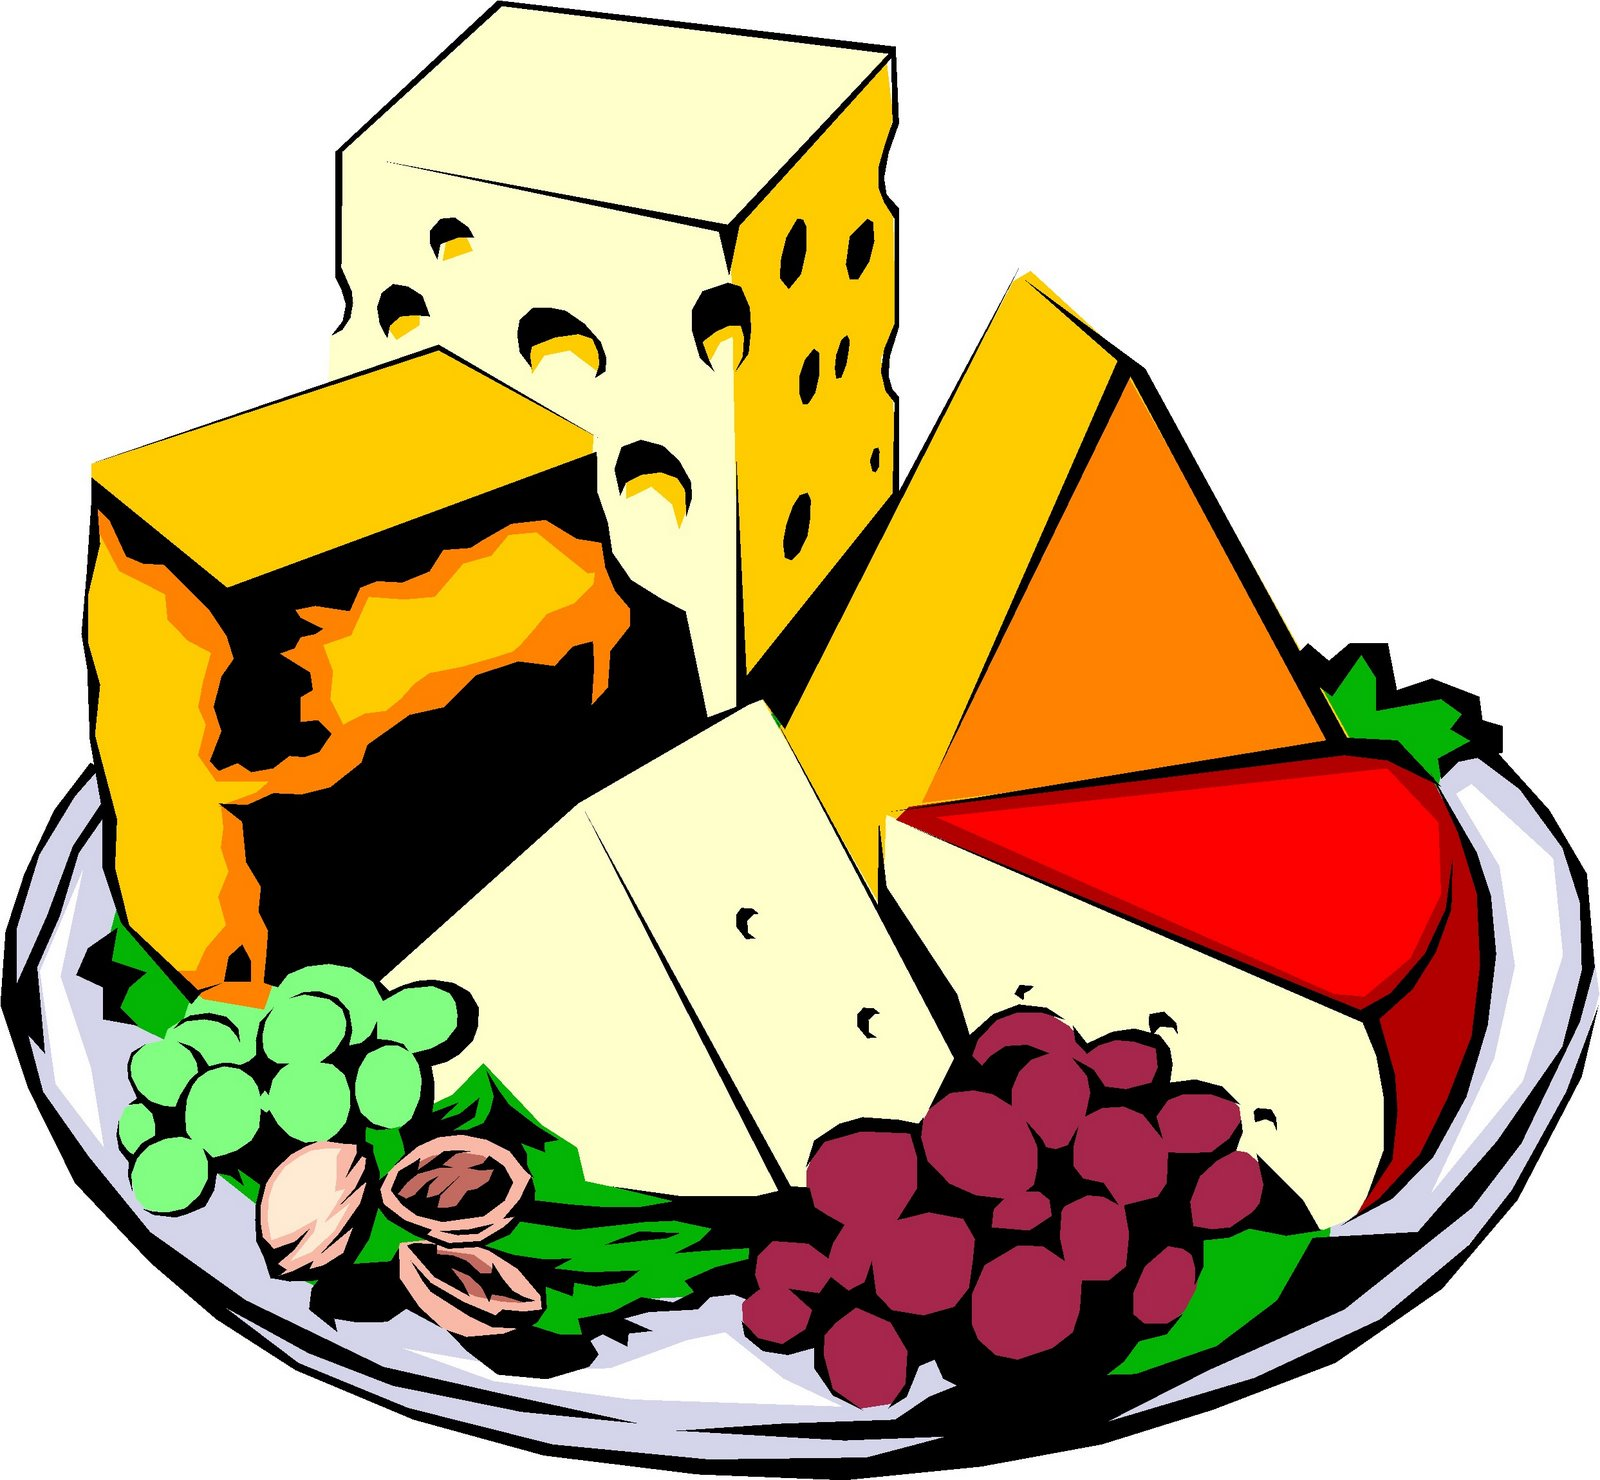 hight resolution of 1600x1480 france clipart wine and cheese